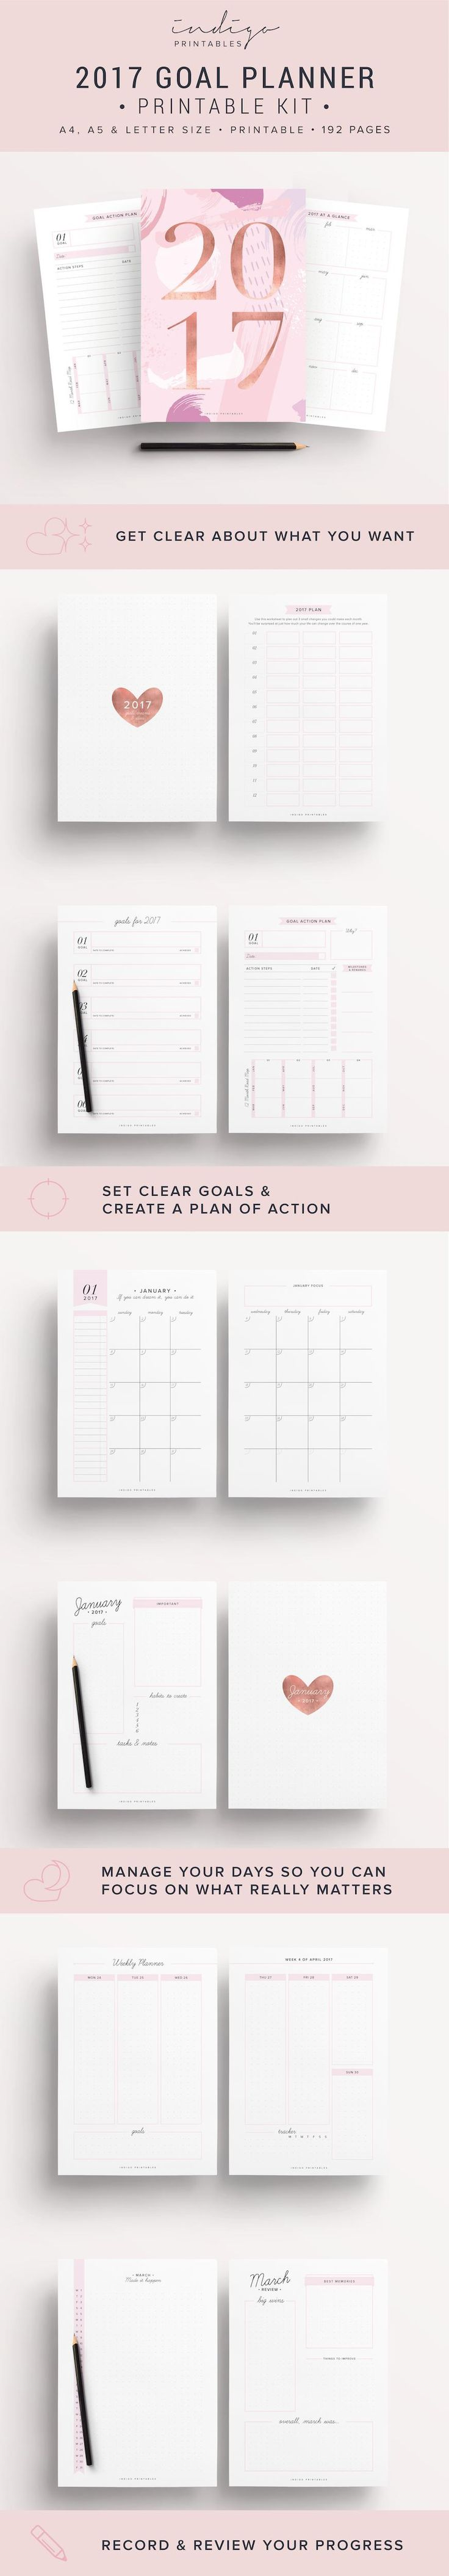 2017 Goal Planner, 192 Printable Pages